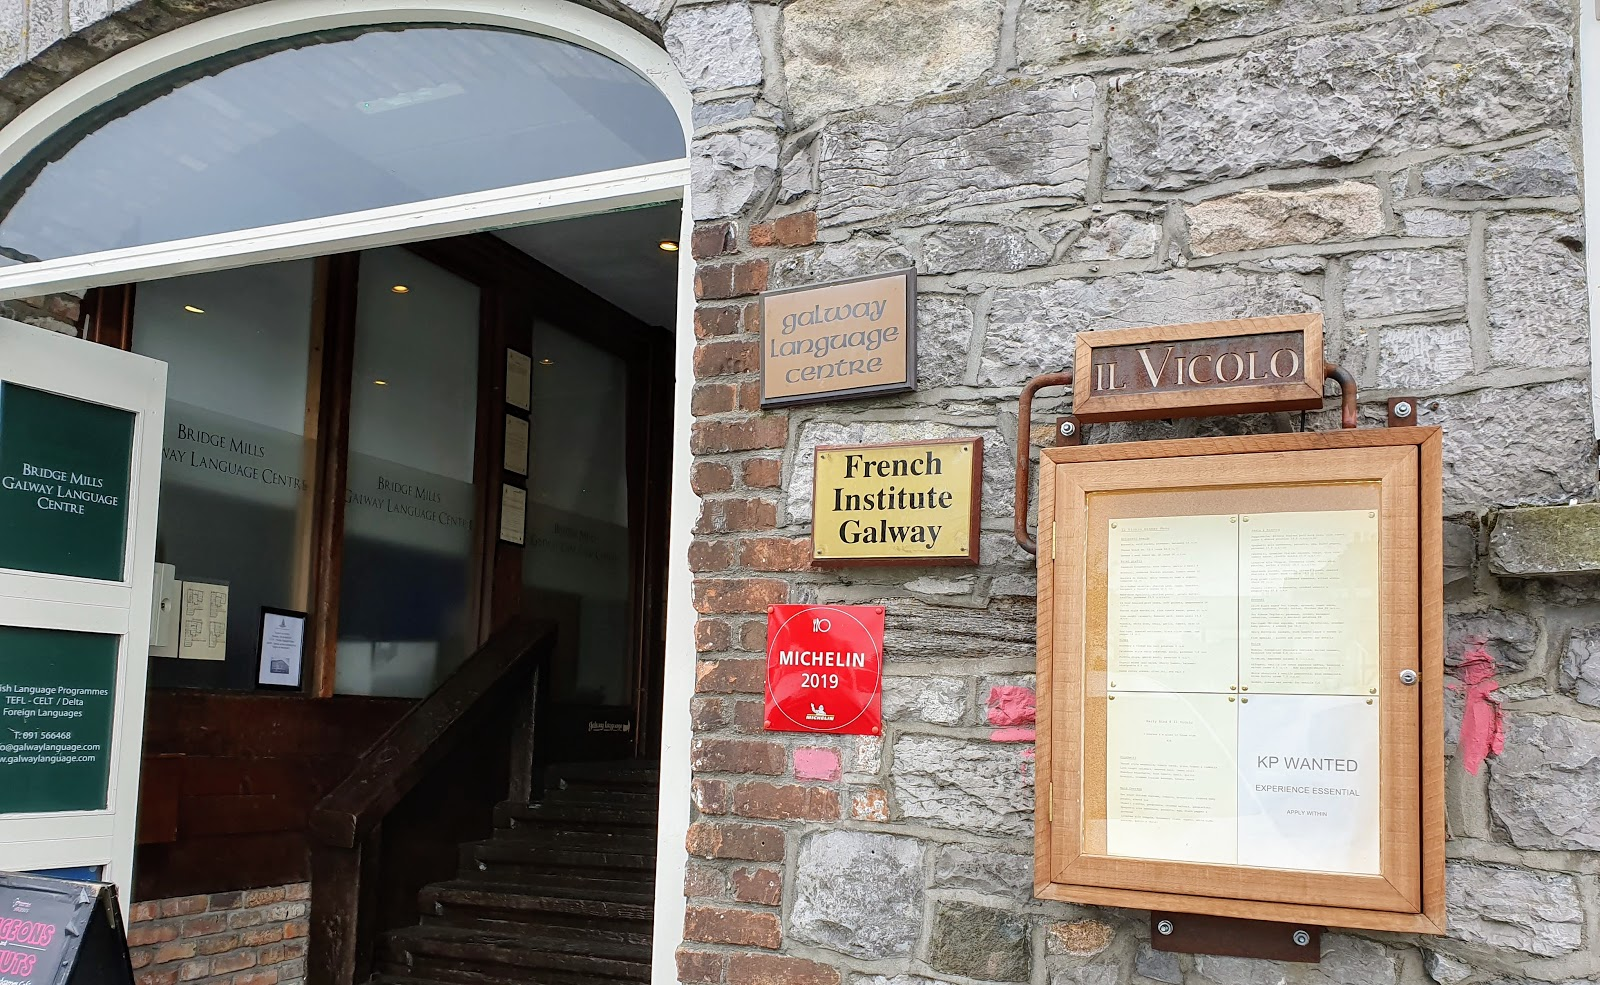 door opening into an upward staircase, nameplates for French Institute Galway, Galway Language Centre and Michelin 2019 for Il Vicolo restaurant - and their menu in a locked wooden noticeboard